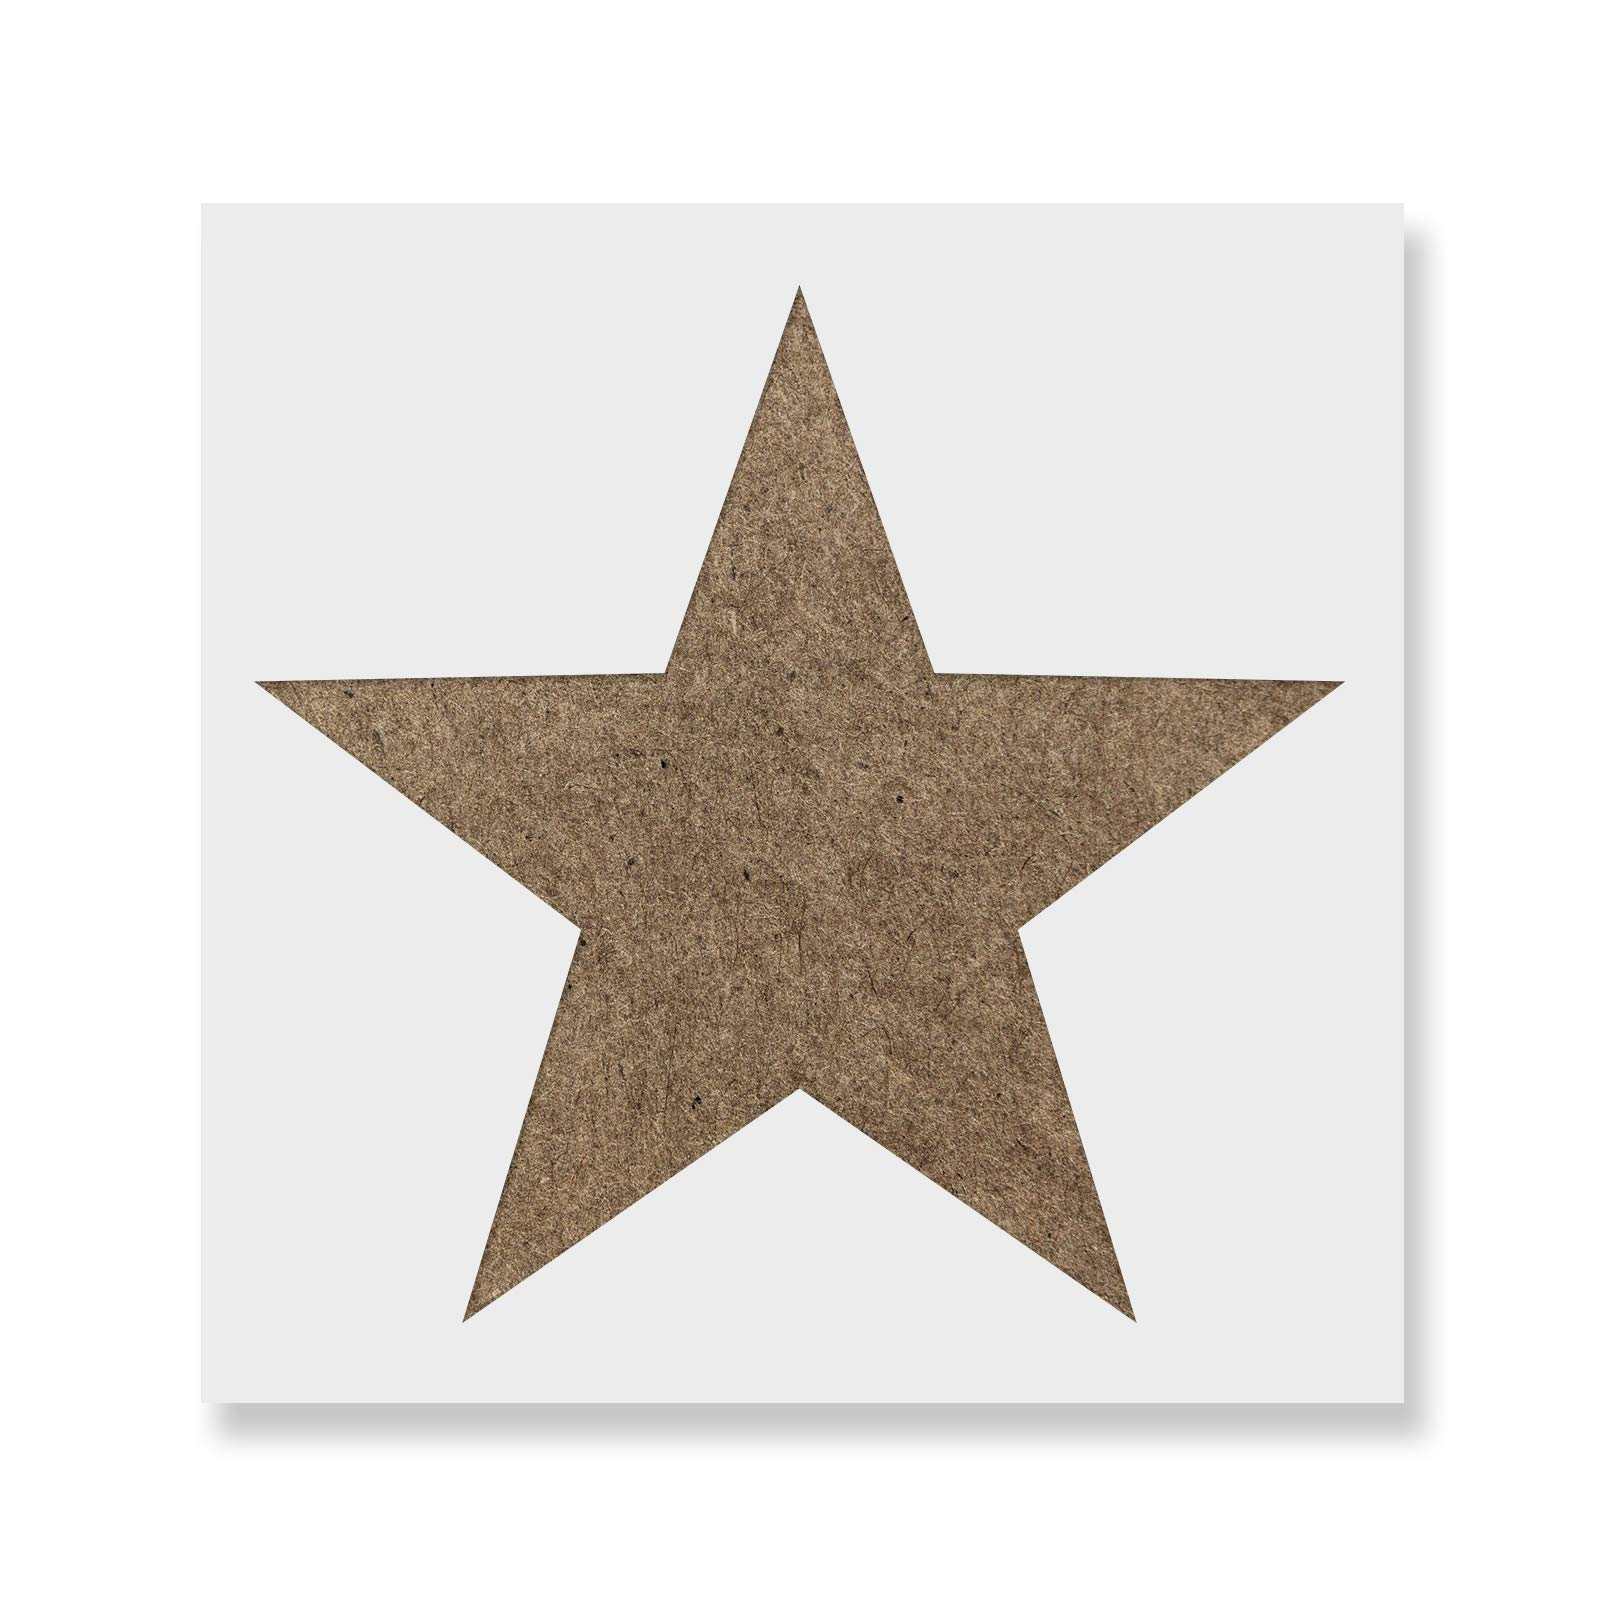 Star Stencil Template for Walls and Crafts - Reusable Stencils for Painting in Small & Large Sizes